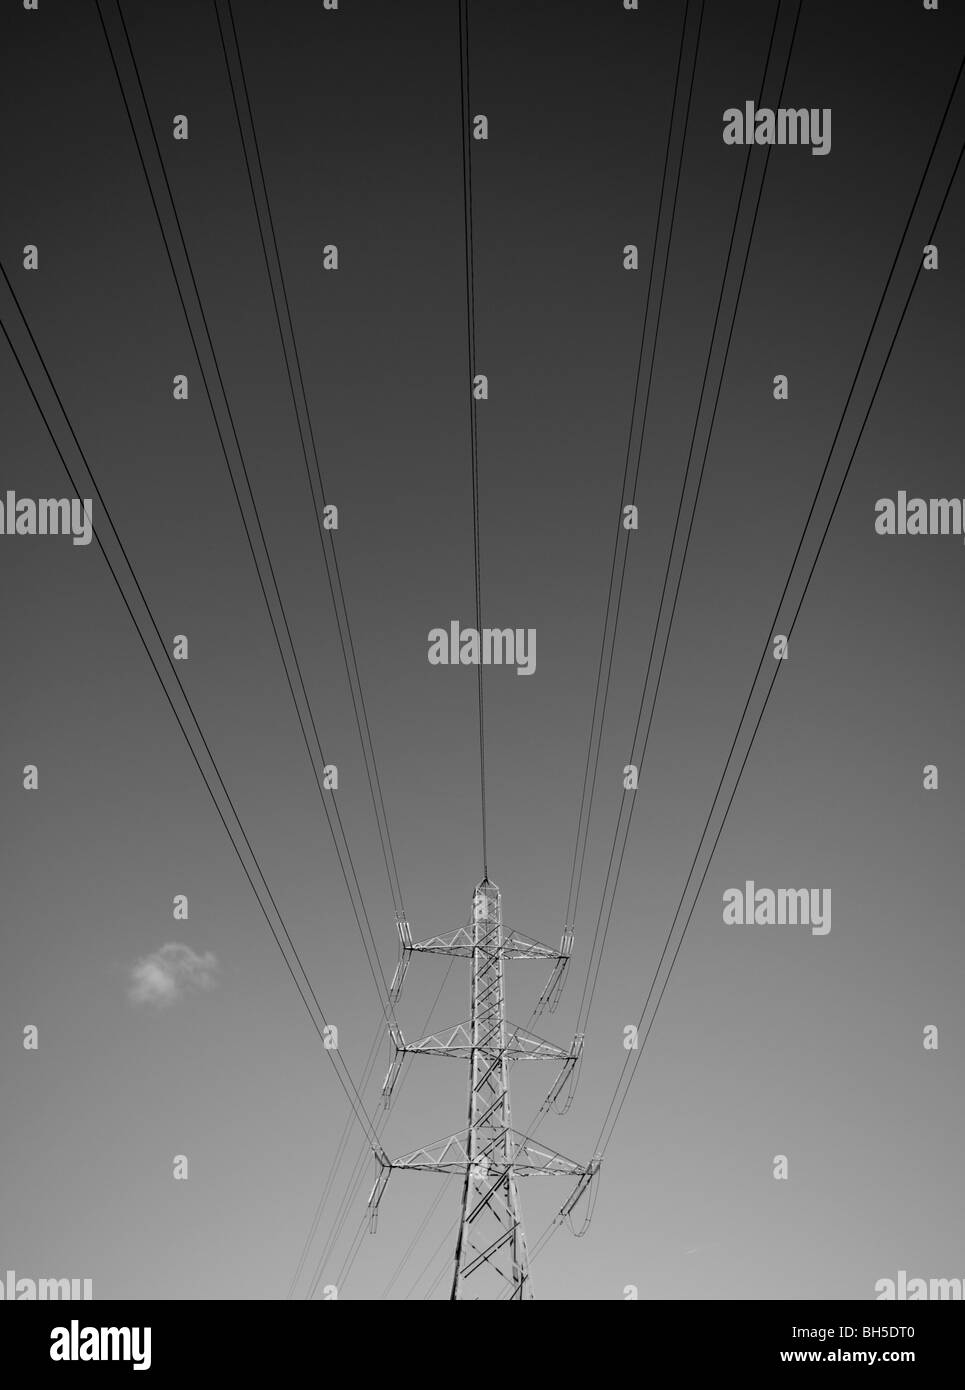 Electricity pylon, cables and sky in monotone - Stock Image